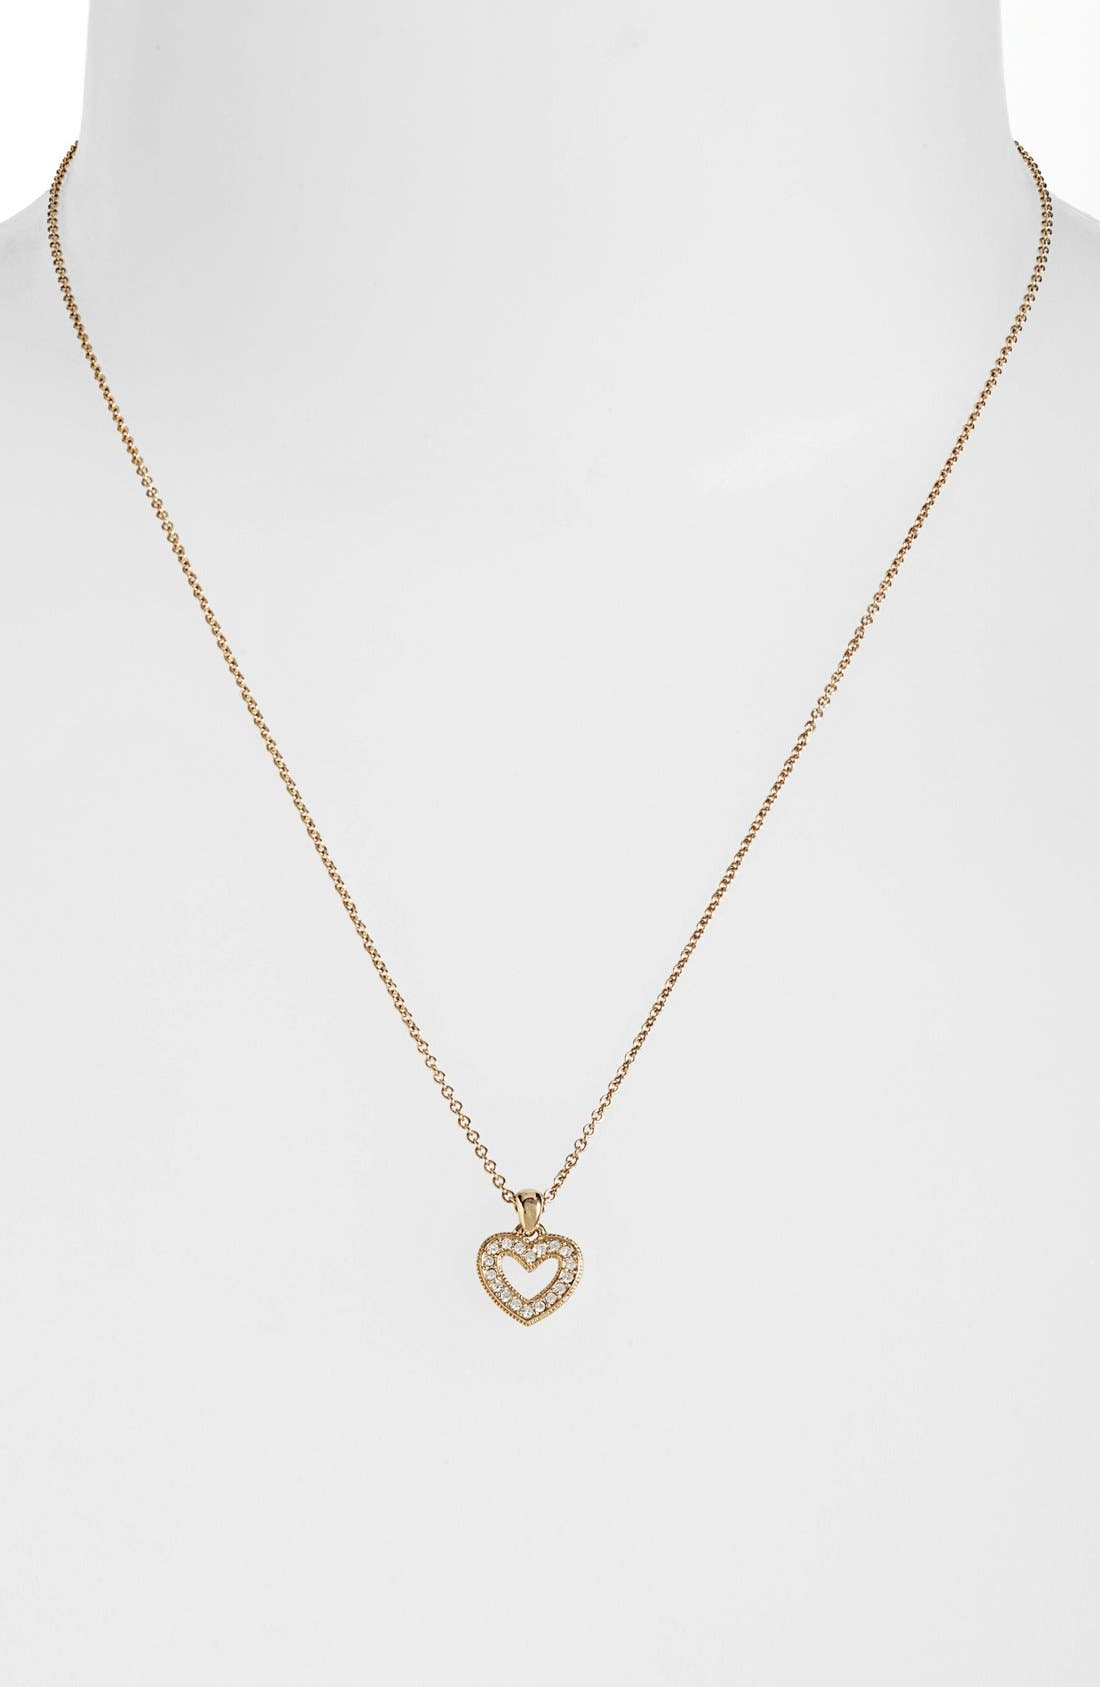 Main Image - Nadri Small Heart Pendant Necklace (Nordstrom Exclusive)